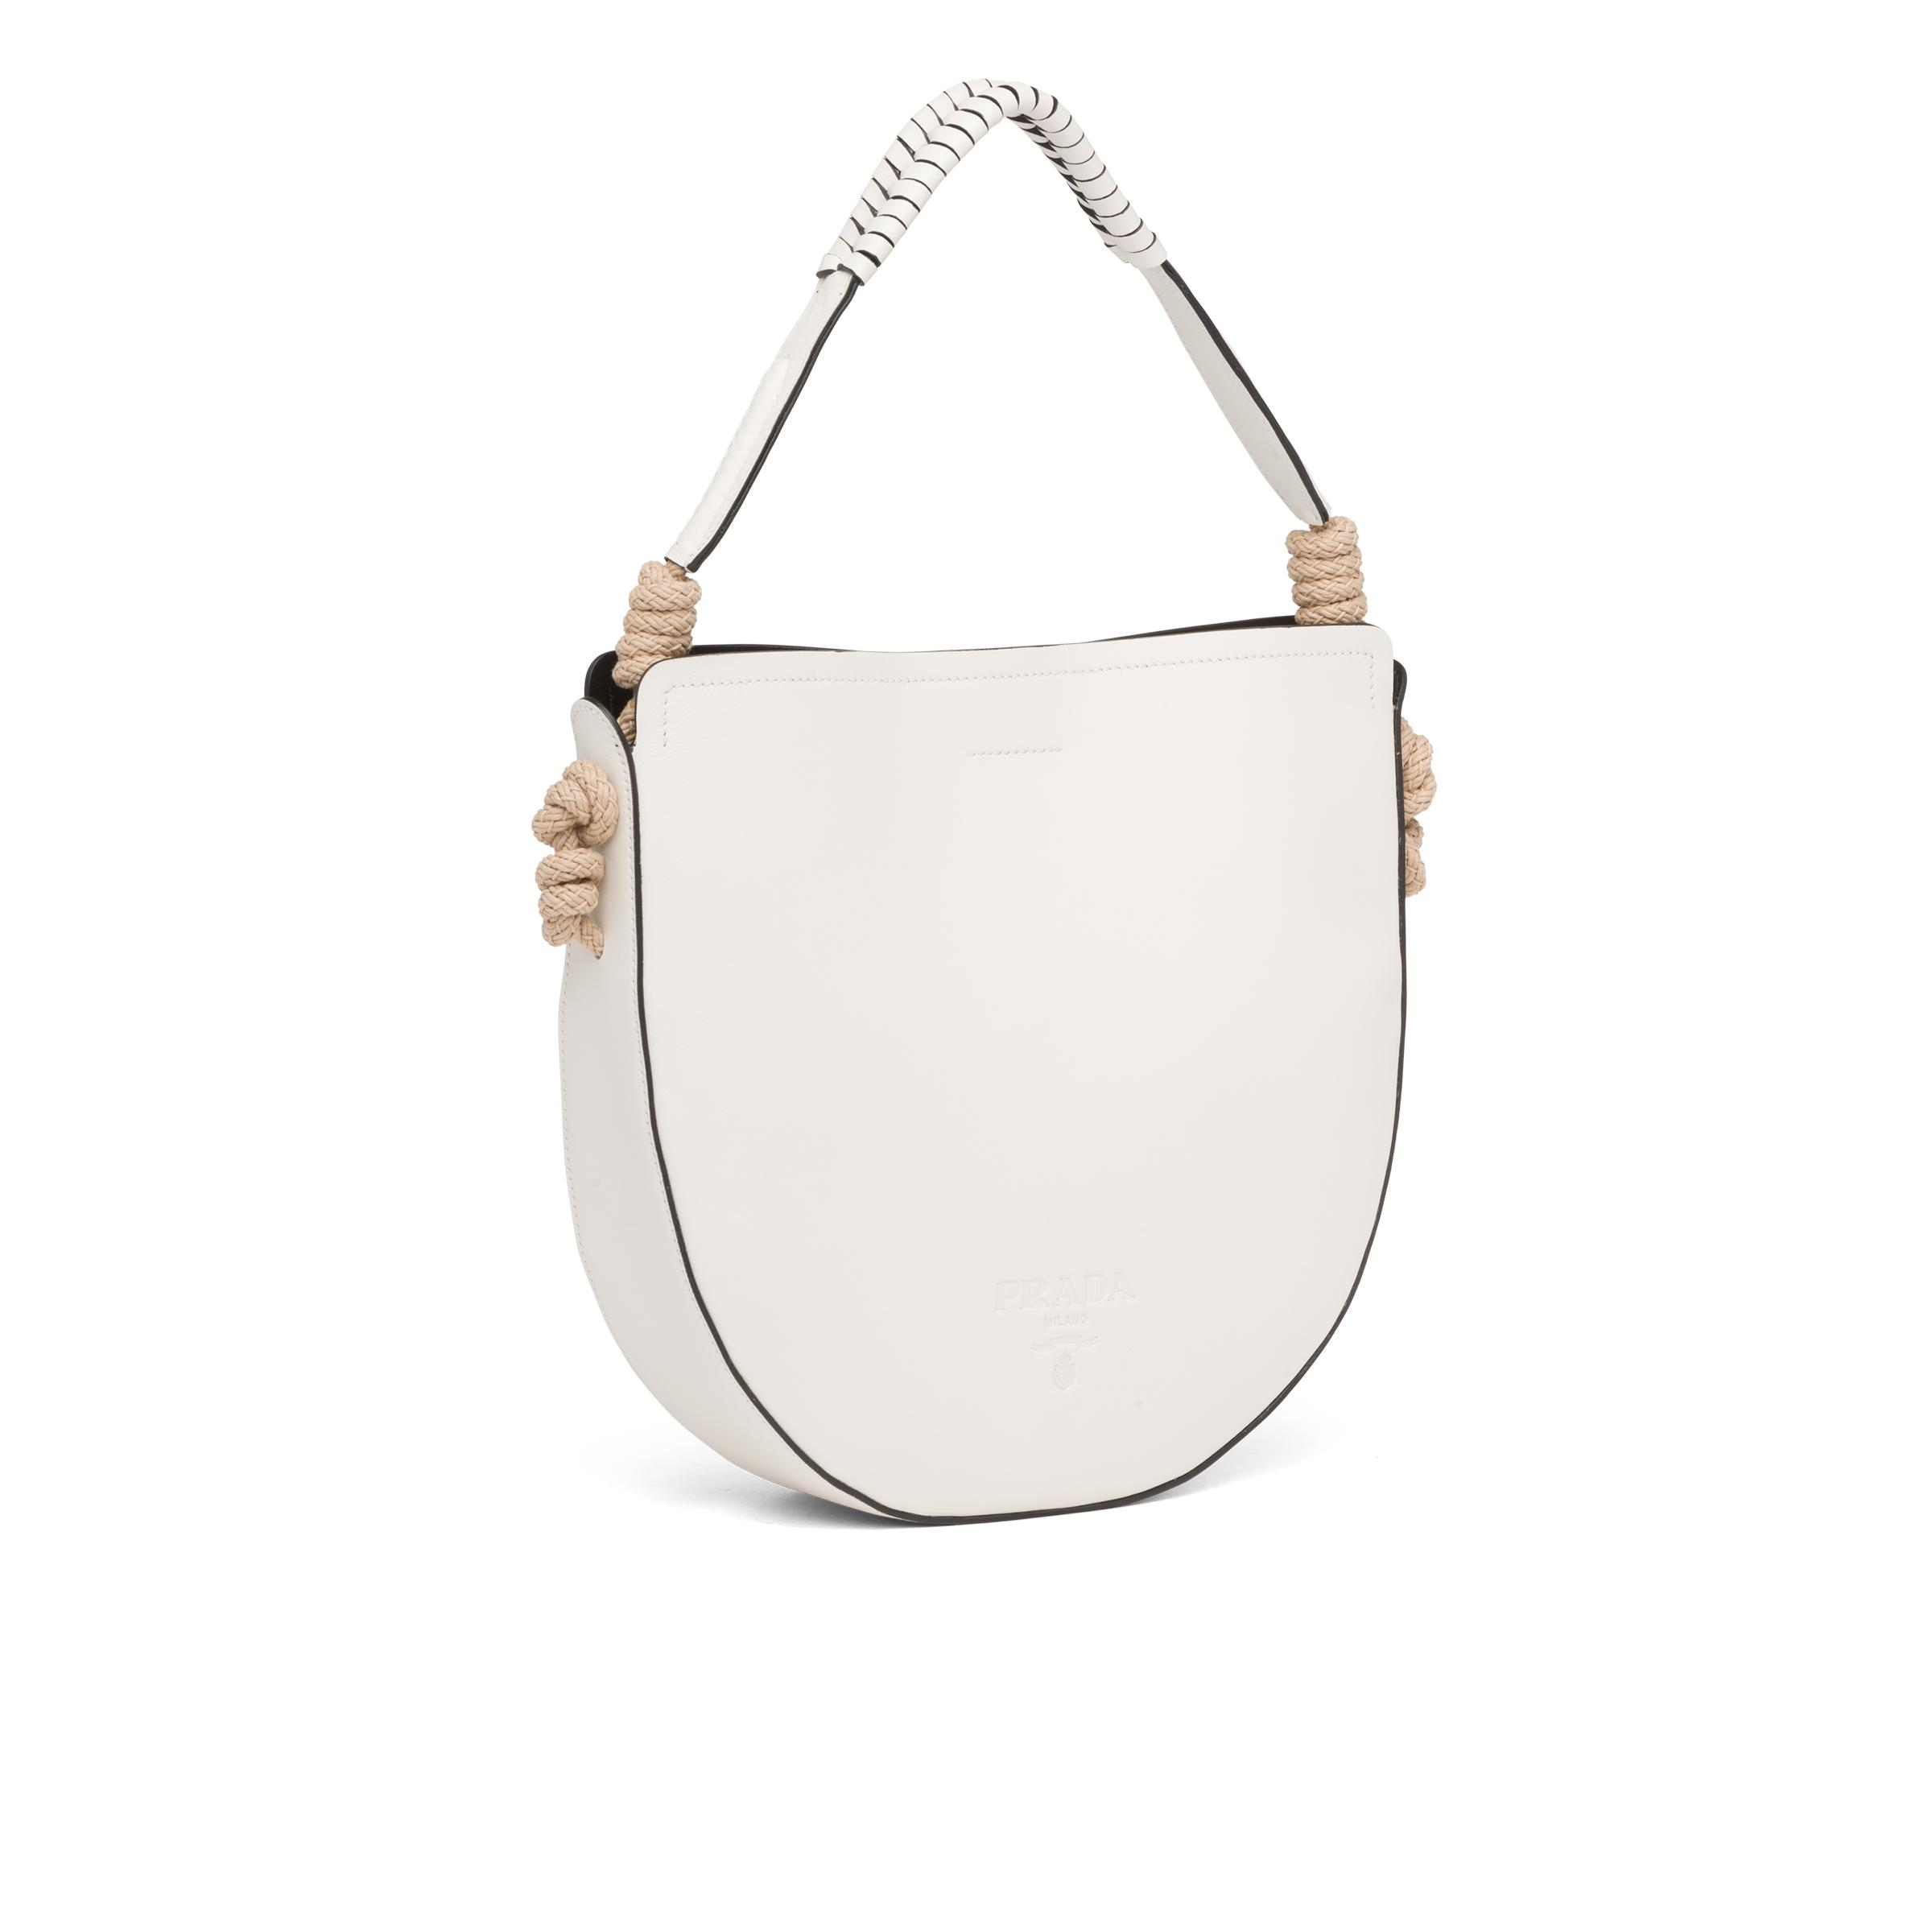 Leather Bag With Cord Details Women White/black 2